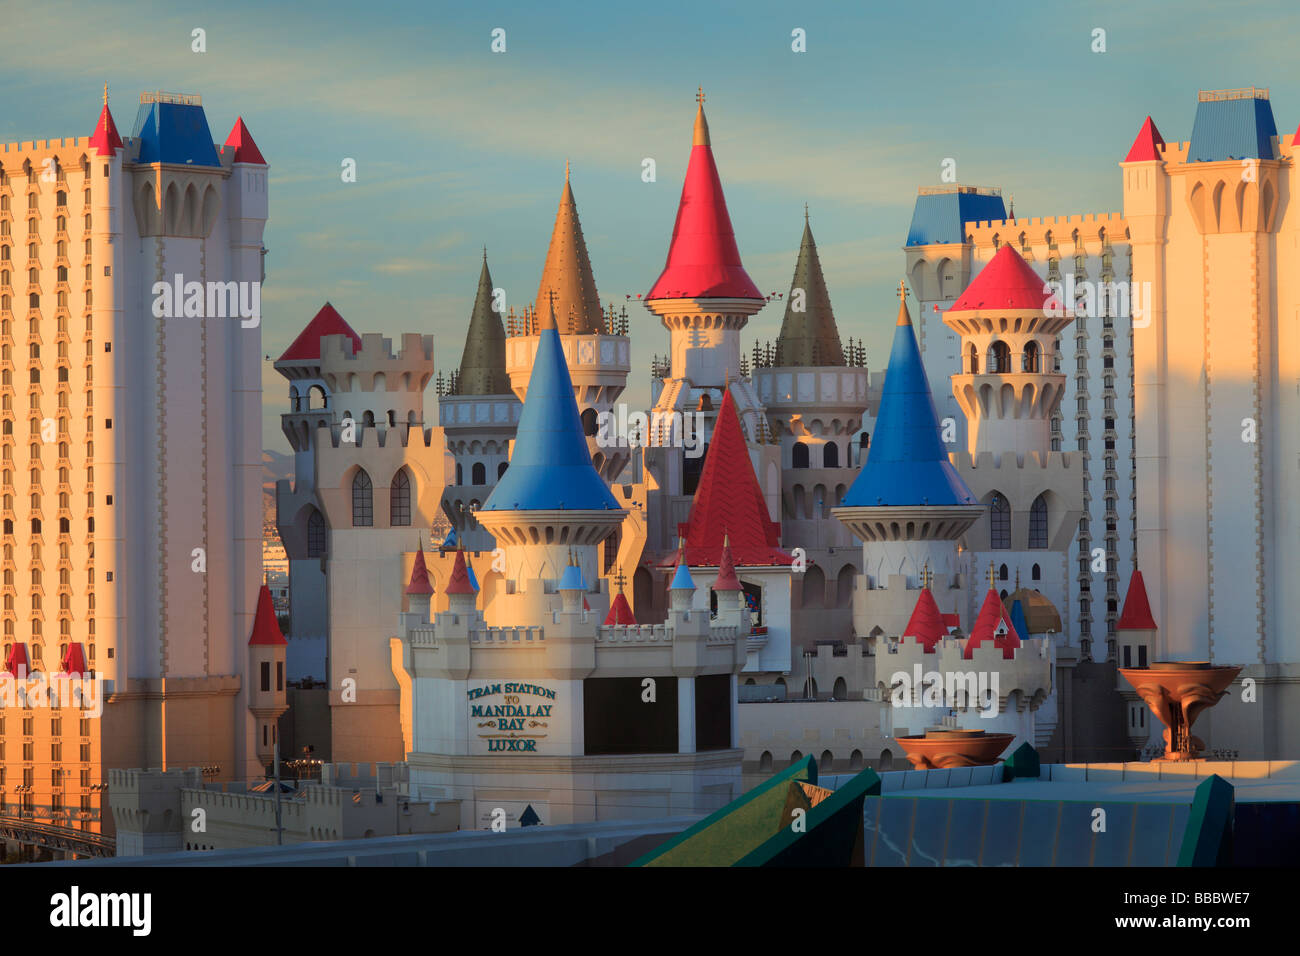 Excalibur Hotel in Las Vegas in the state of Nevada, USA - Stock Image